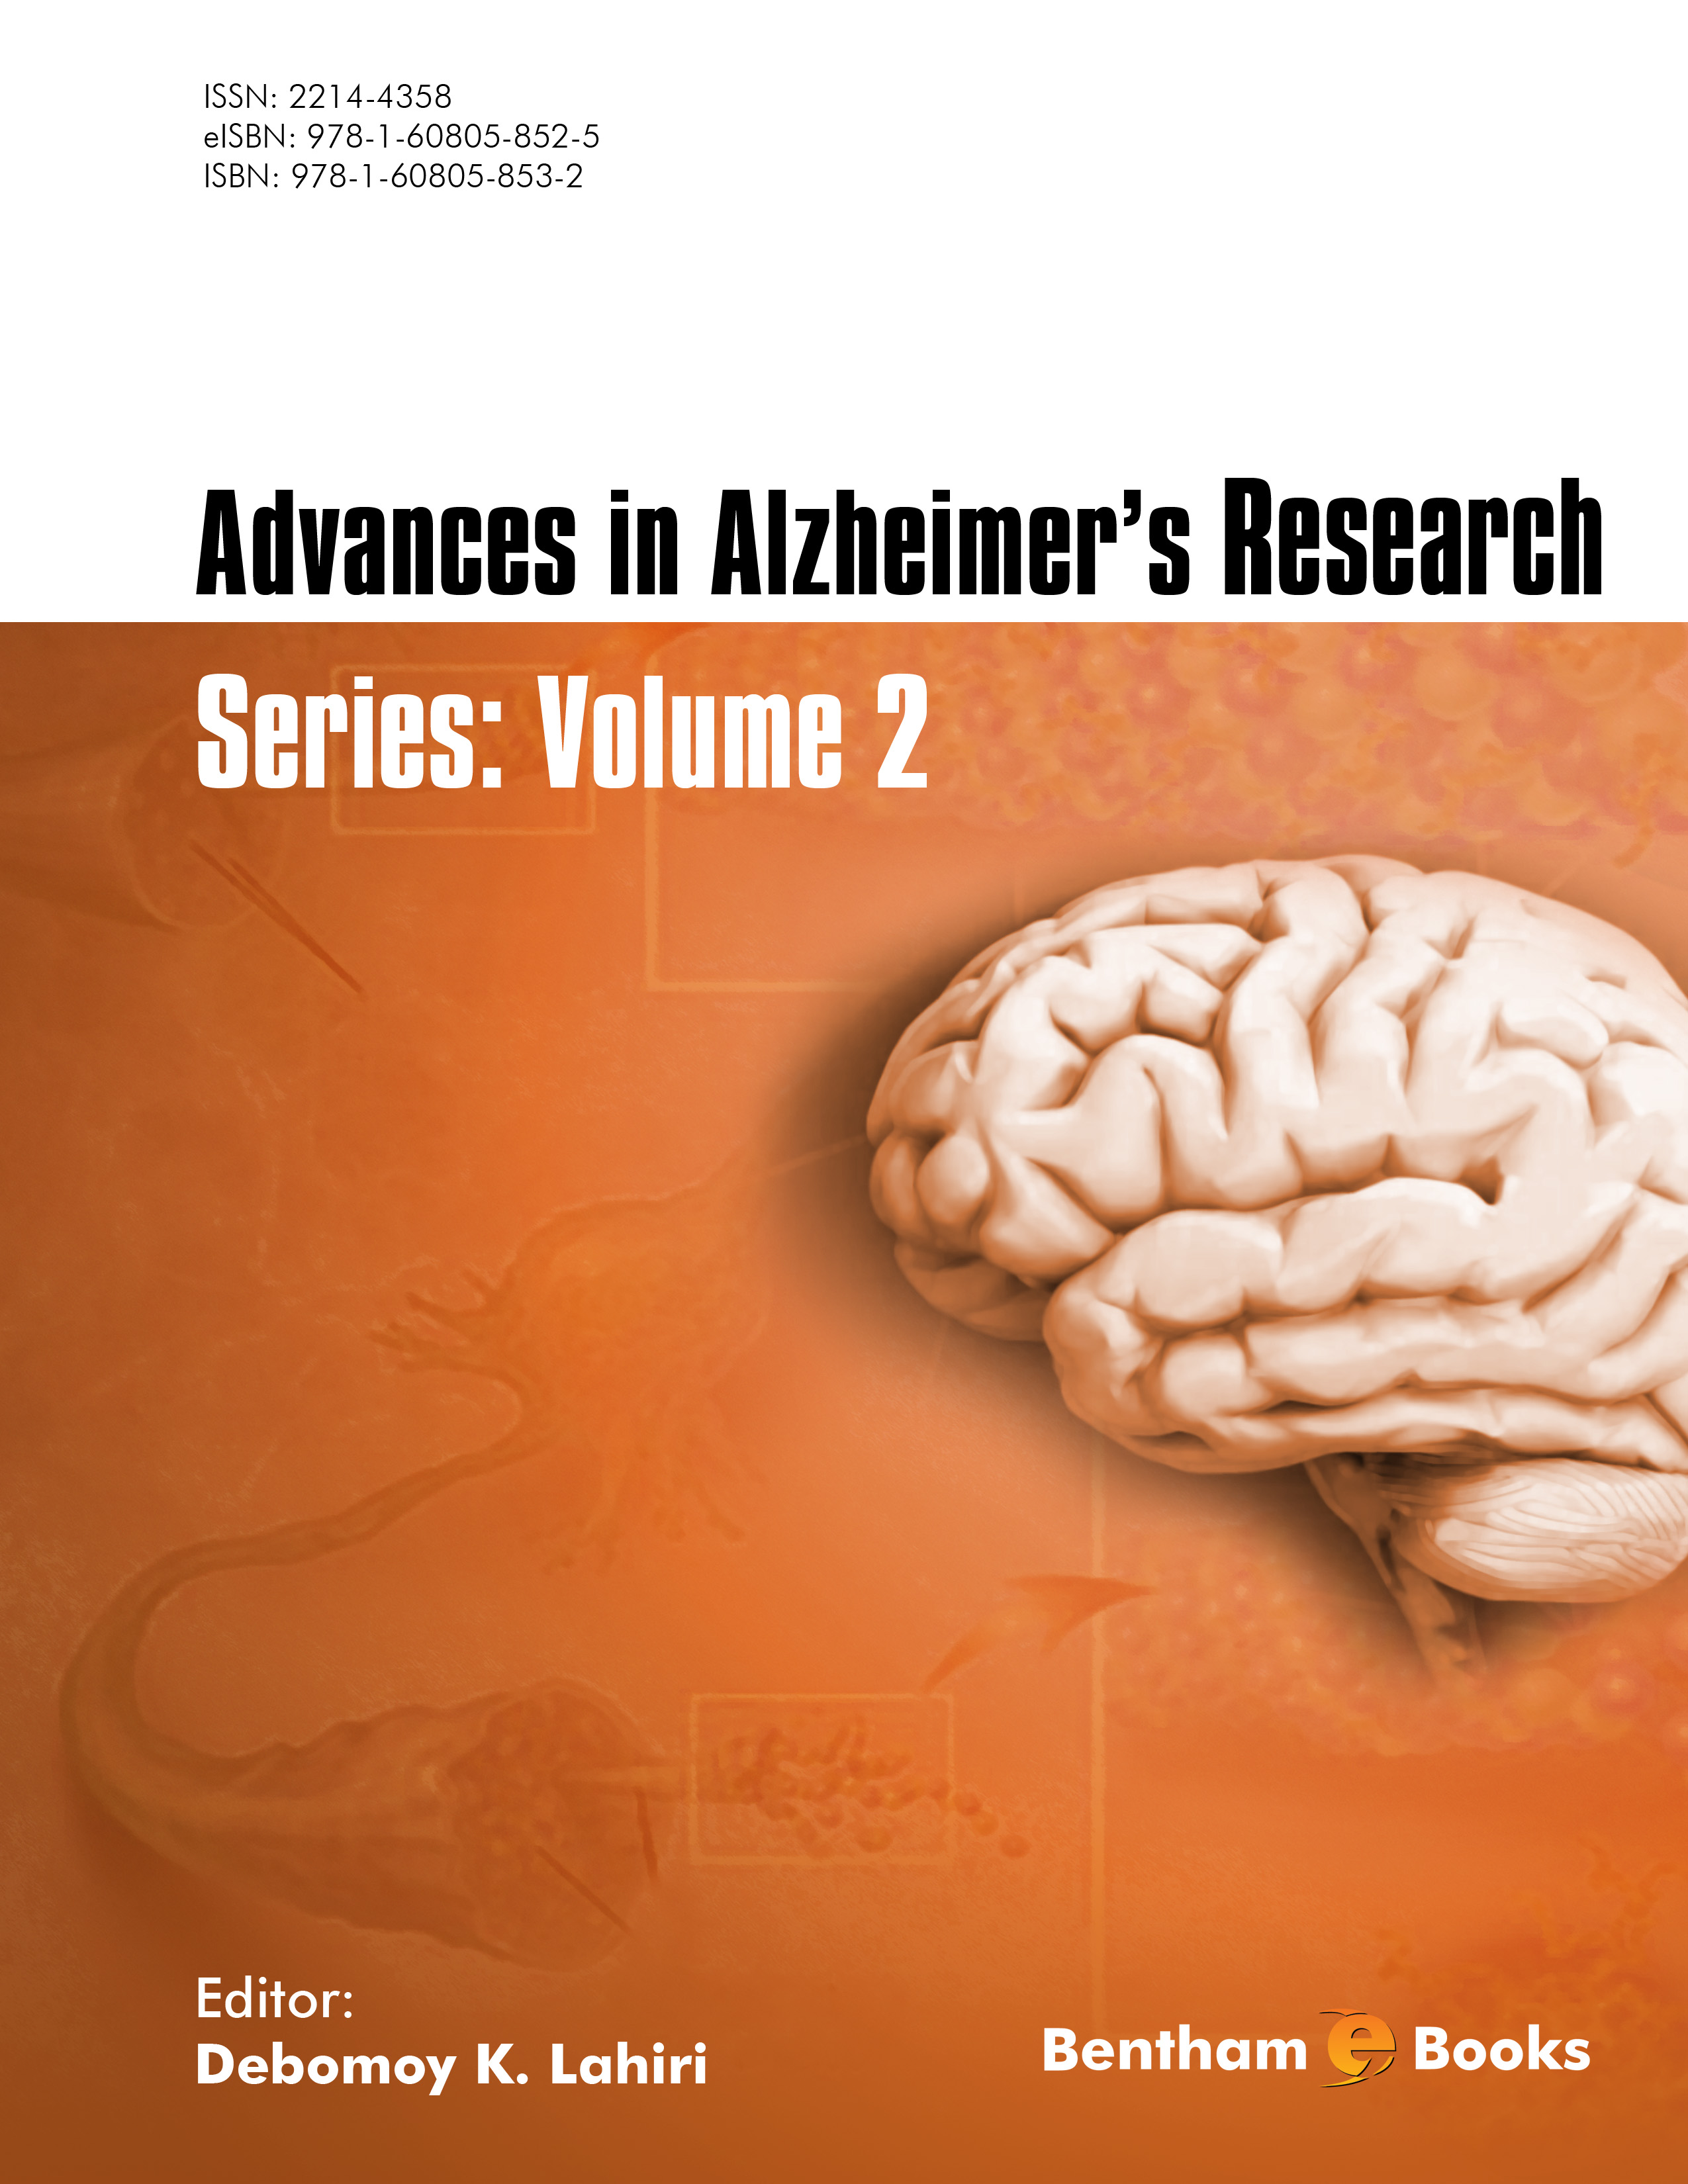 Advances in Alzheimer's Research